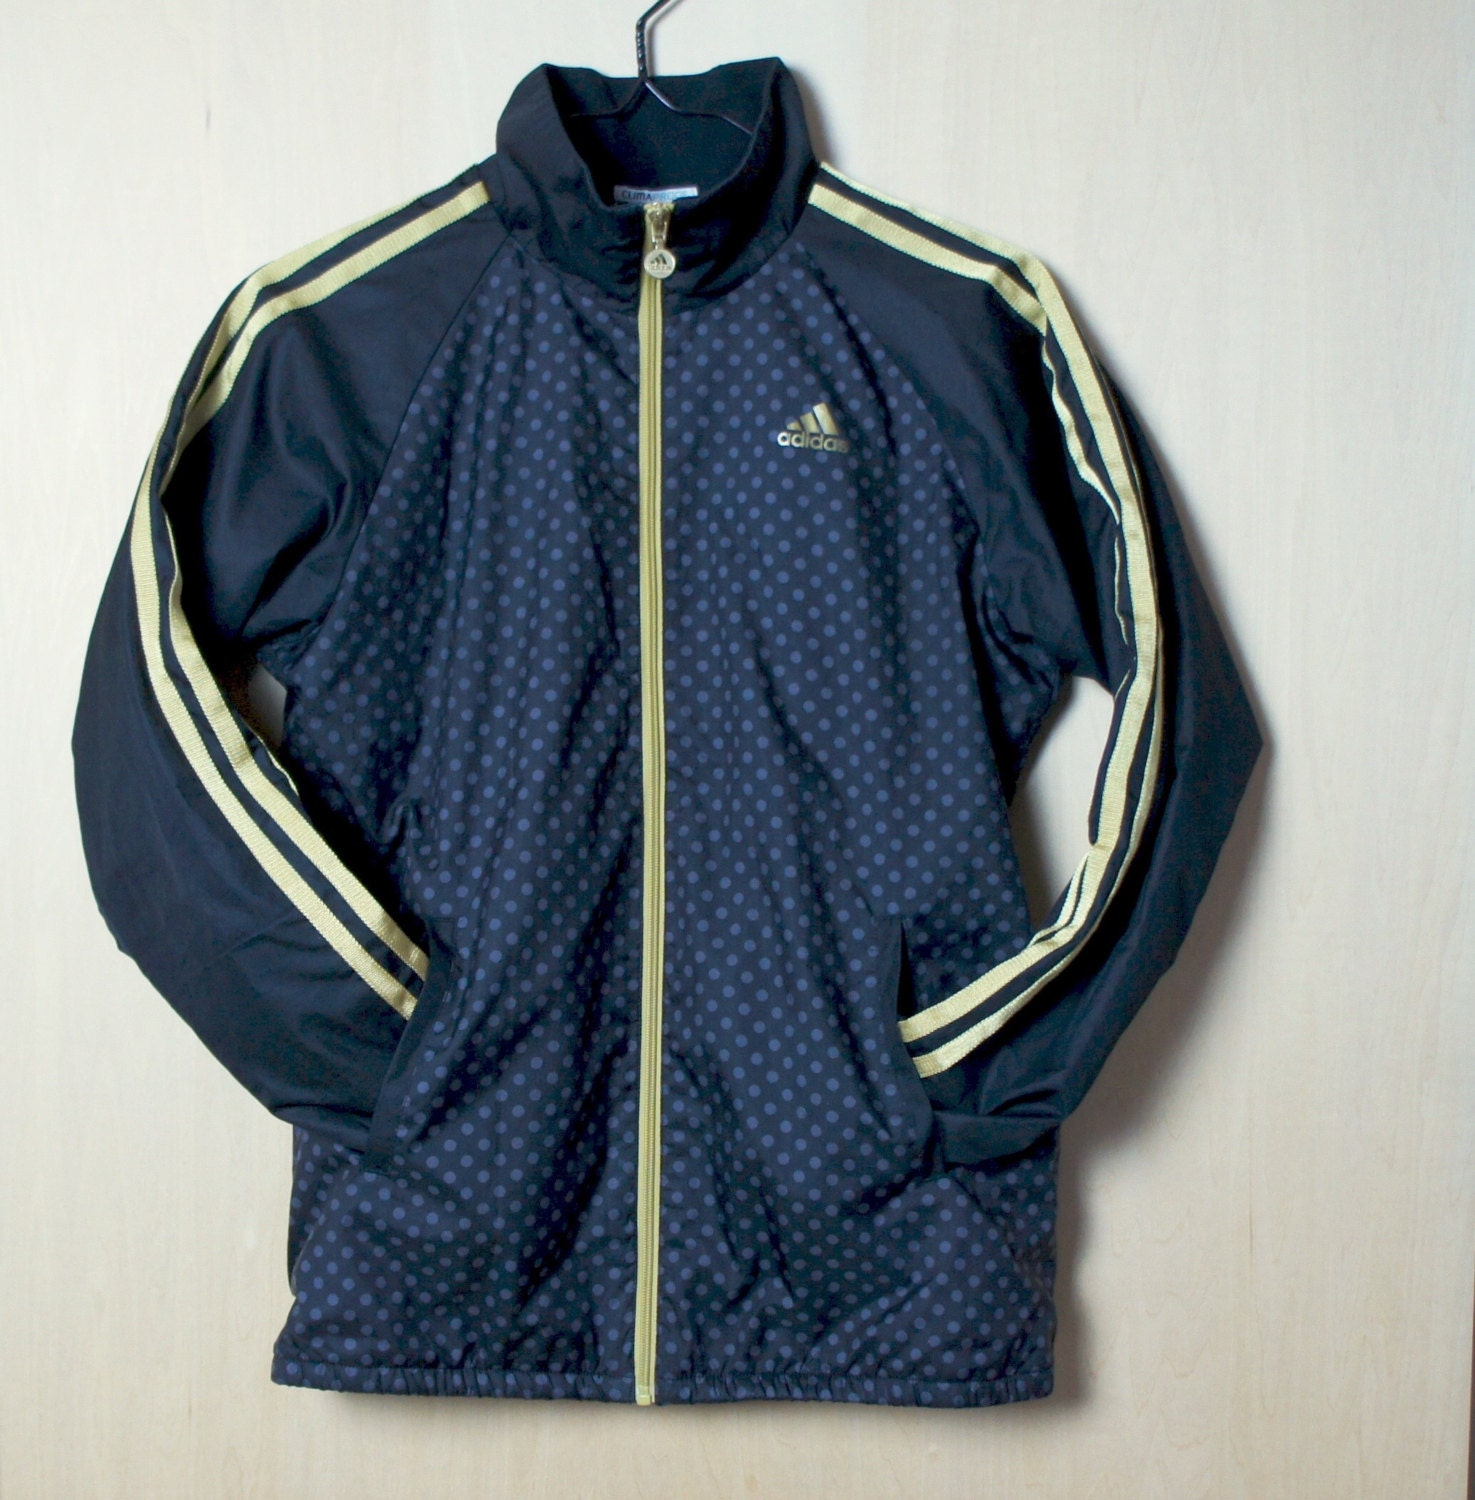 Sale Adidas Jacket Vintage 90s Adidas Windbreaker Zip